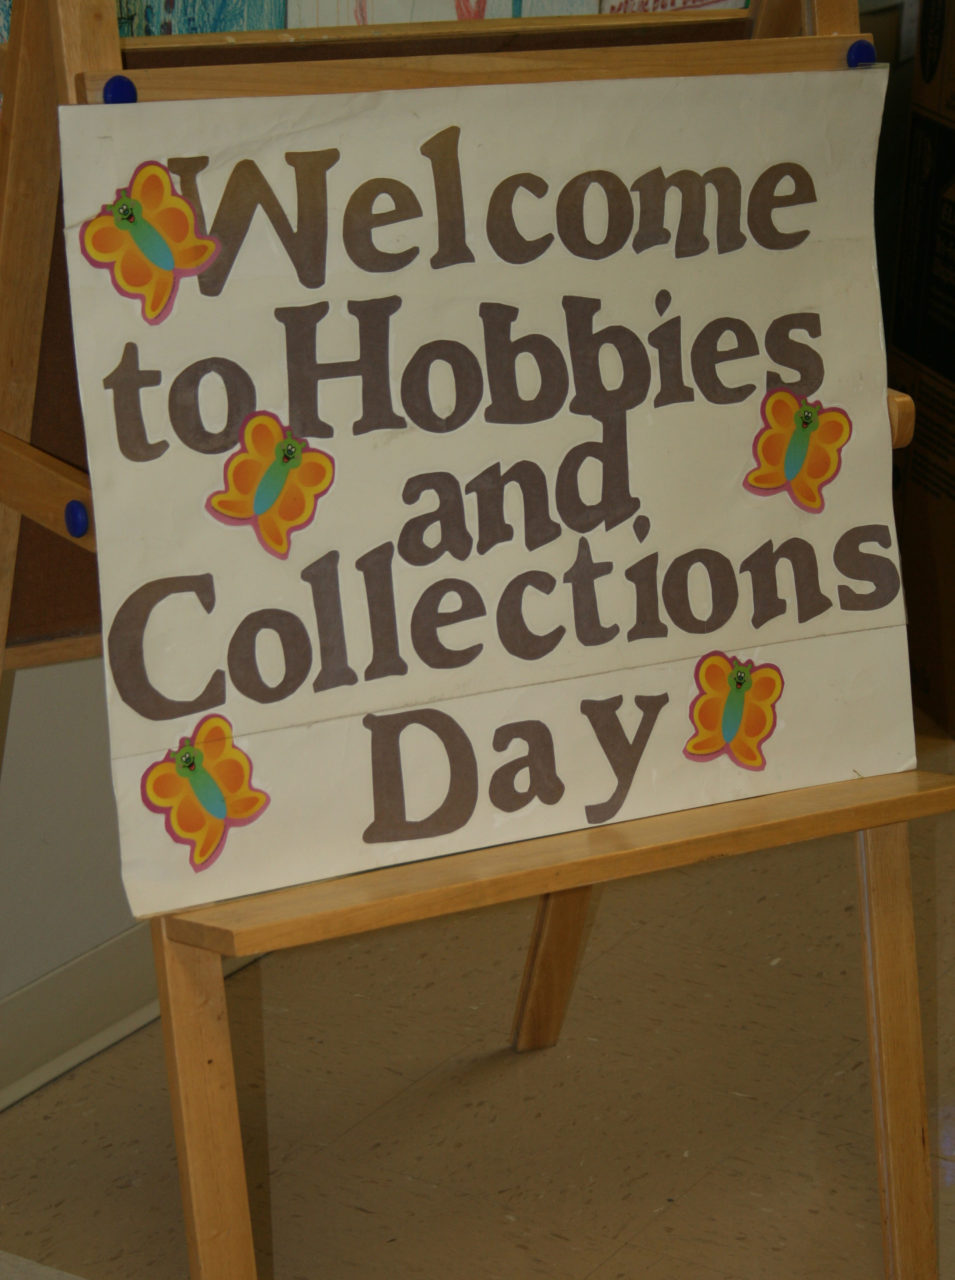 Hobbie & collections2_2013